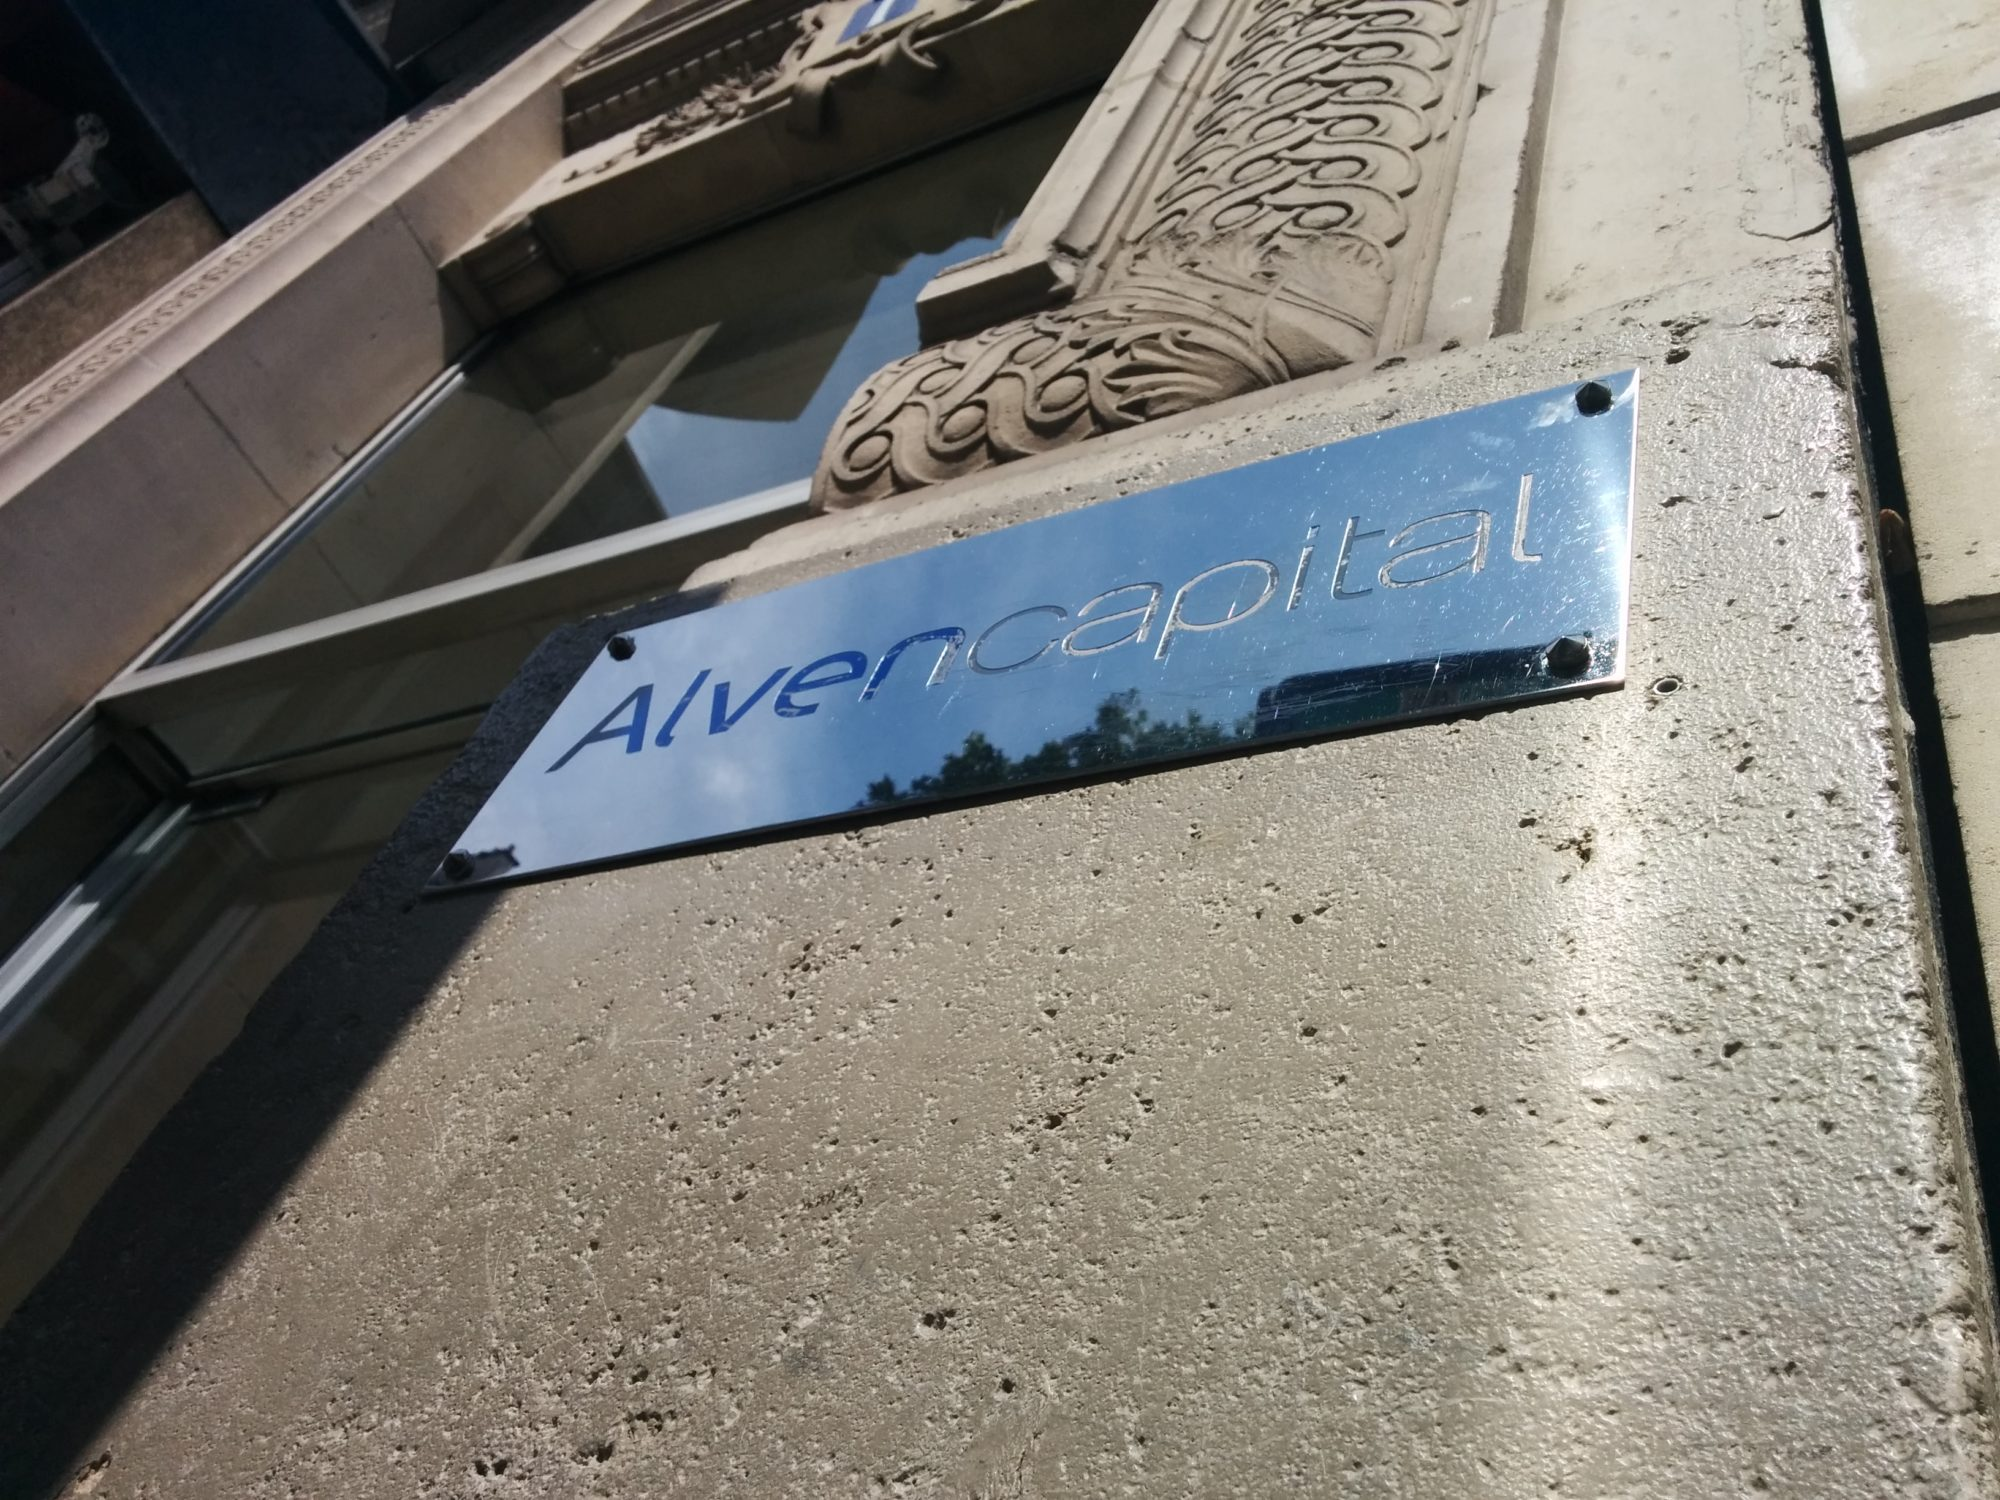 Alven Capital - French VC